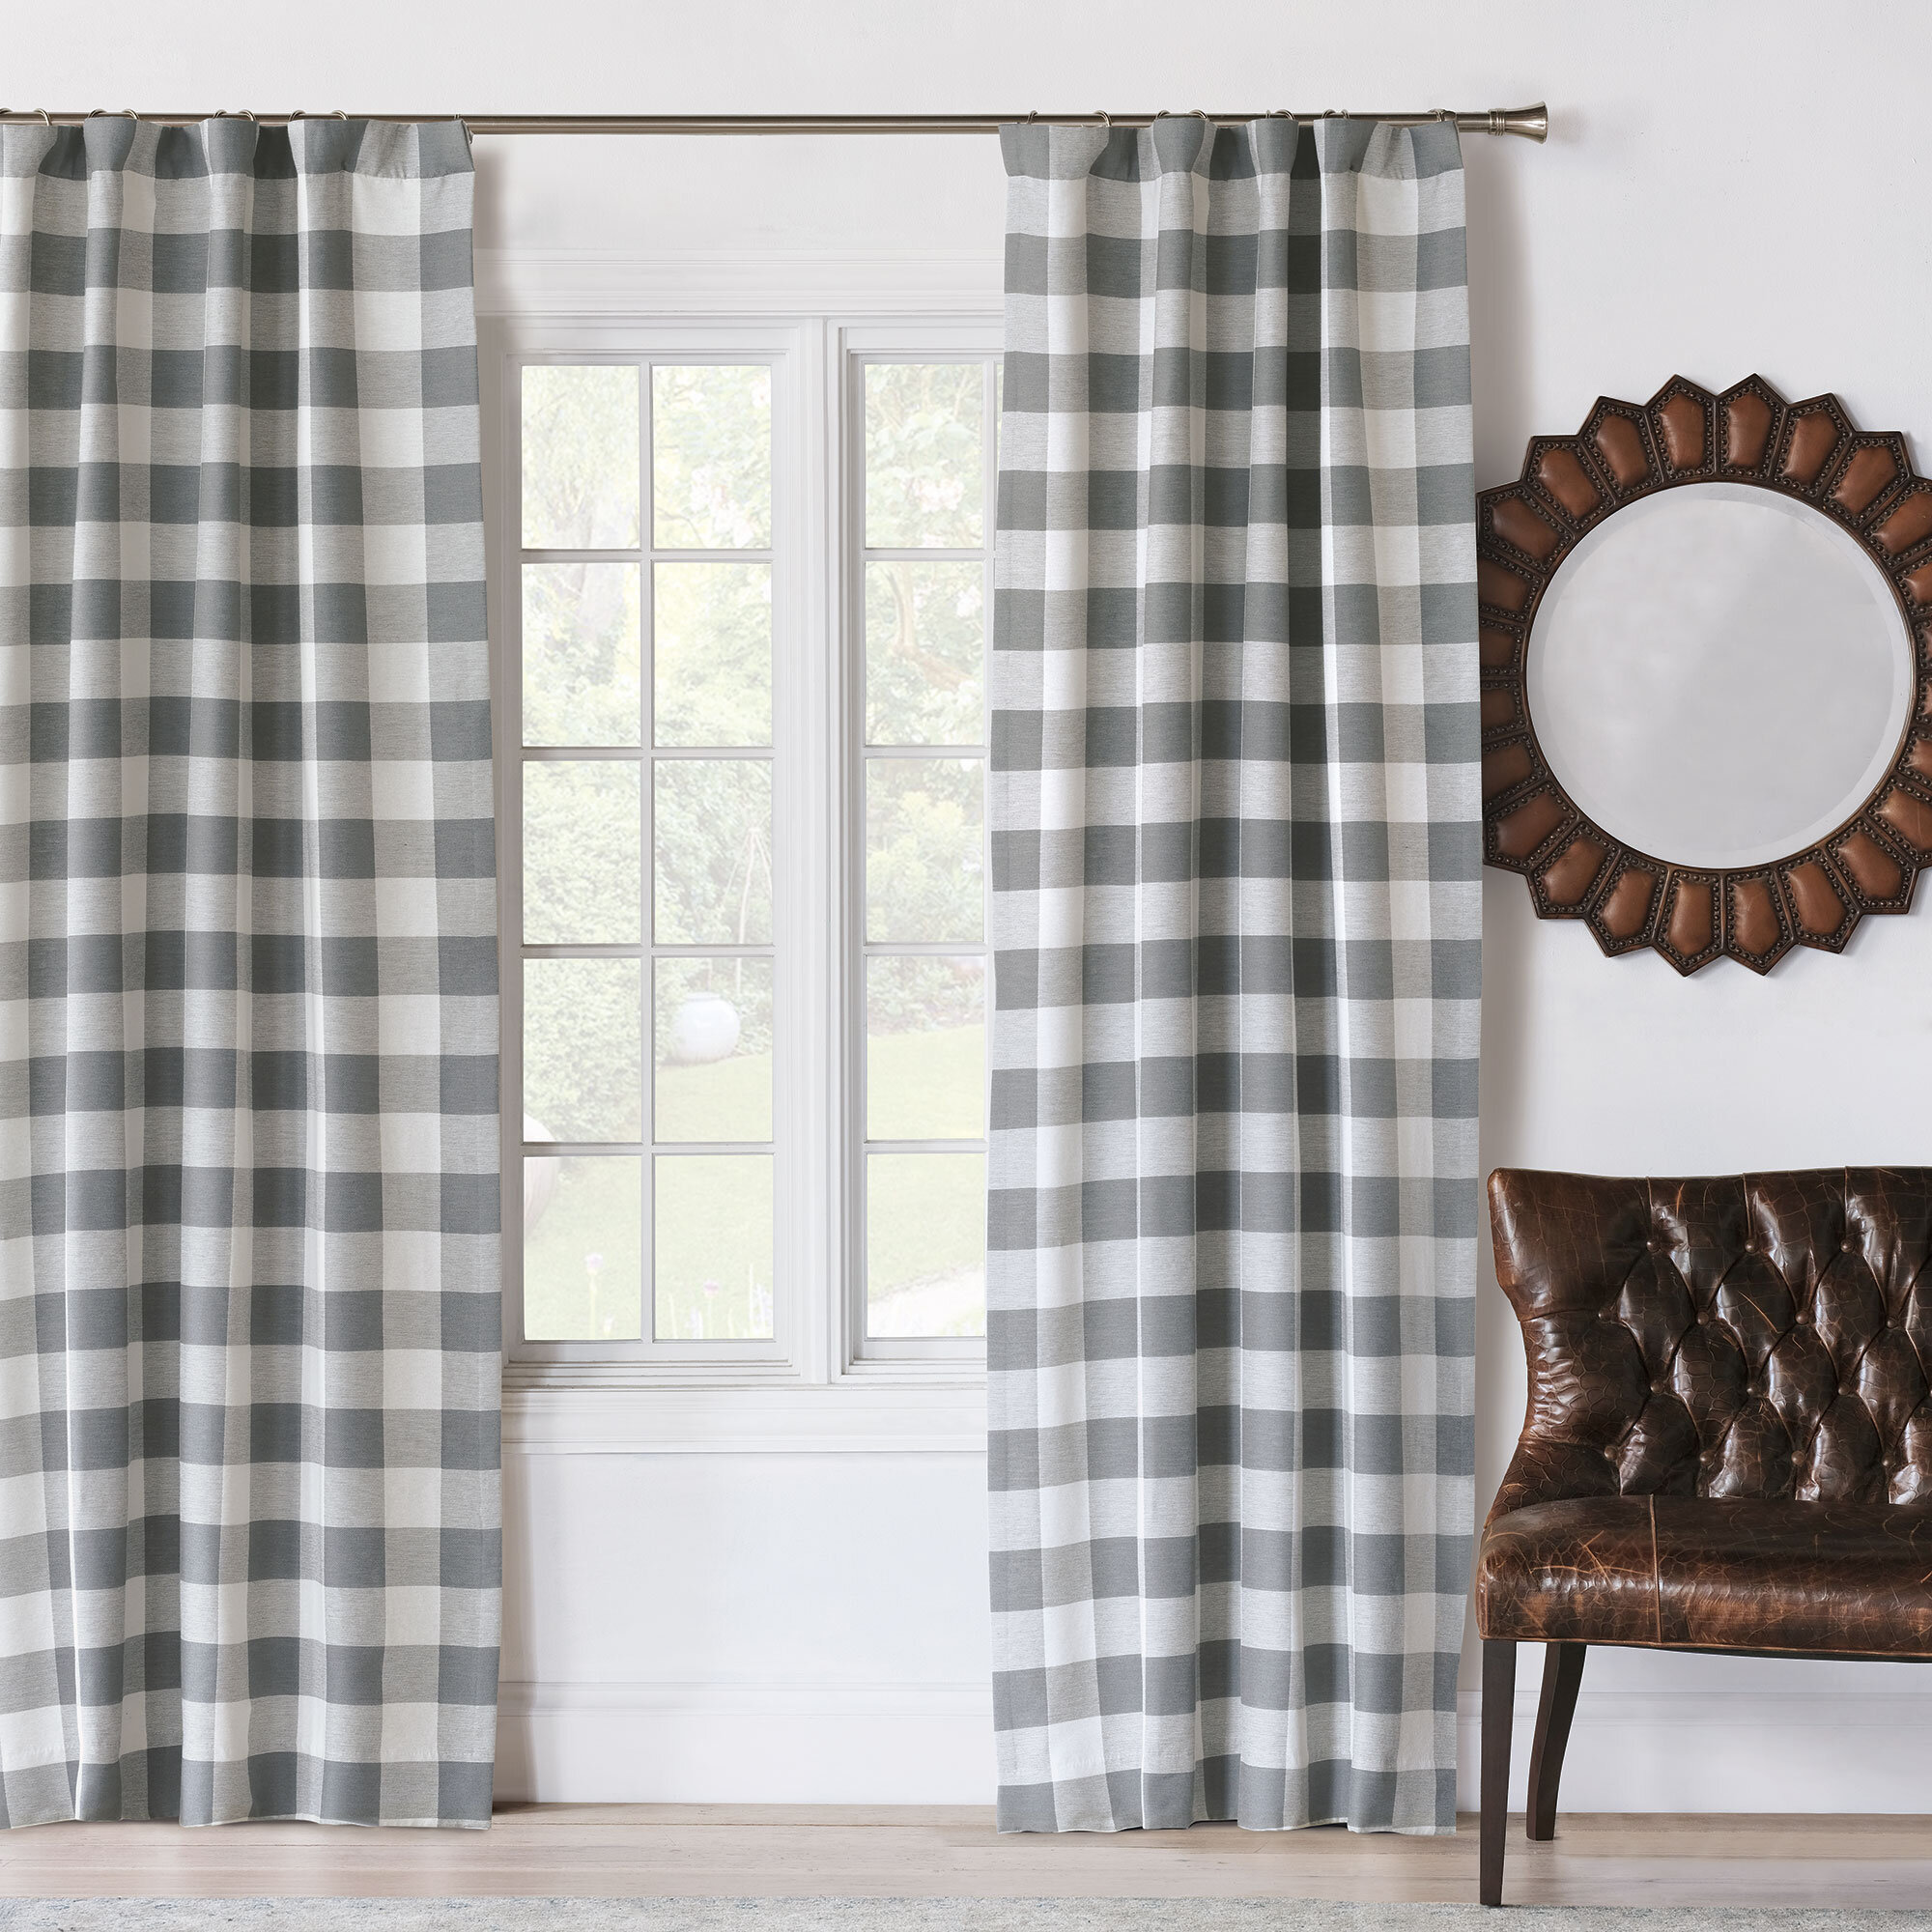 Eastern Accents Hampshire Phipps Slate 100 Cotton Plaid Room Darkening Rod Pocket Single Curtain Panel Perigold